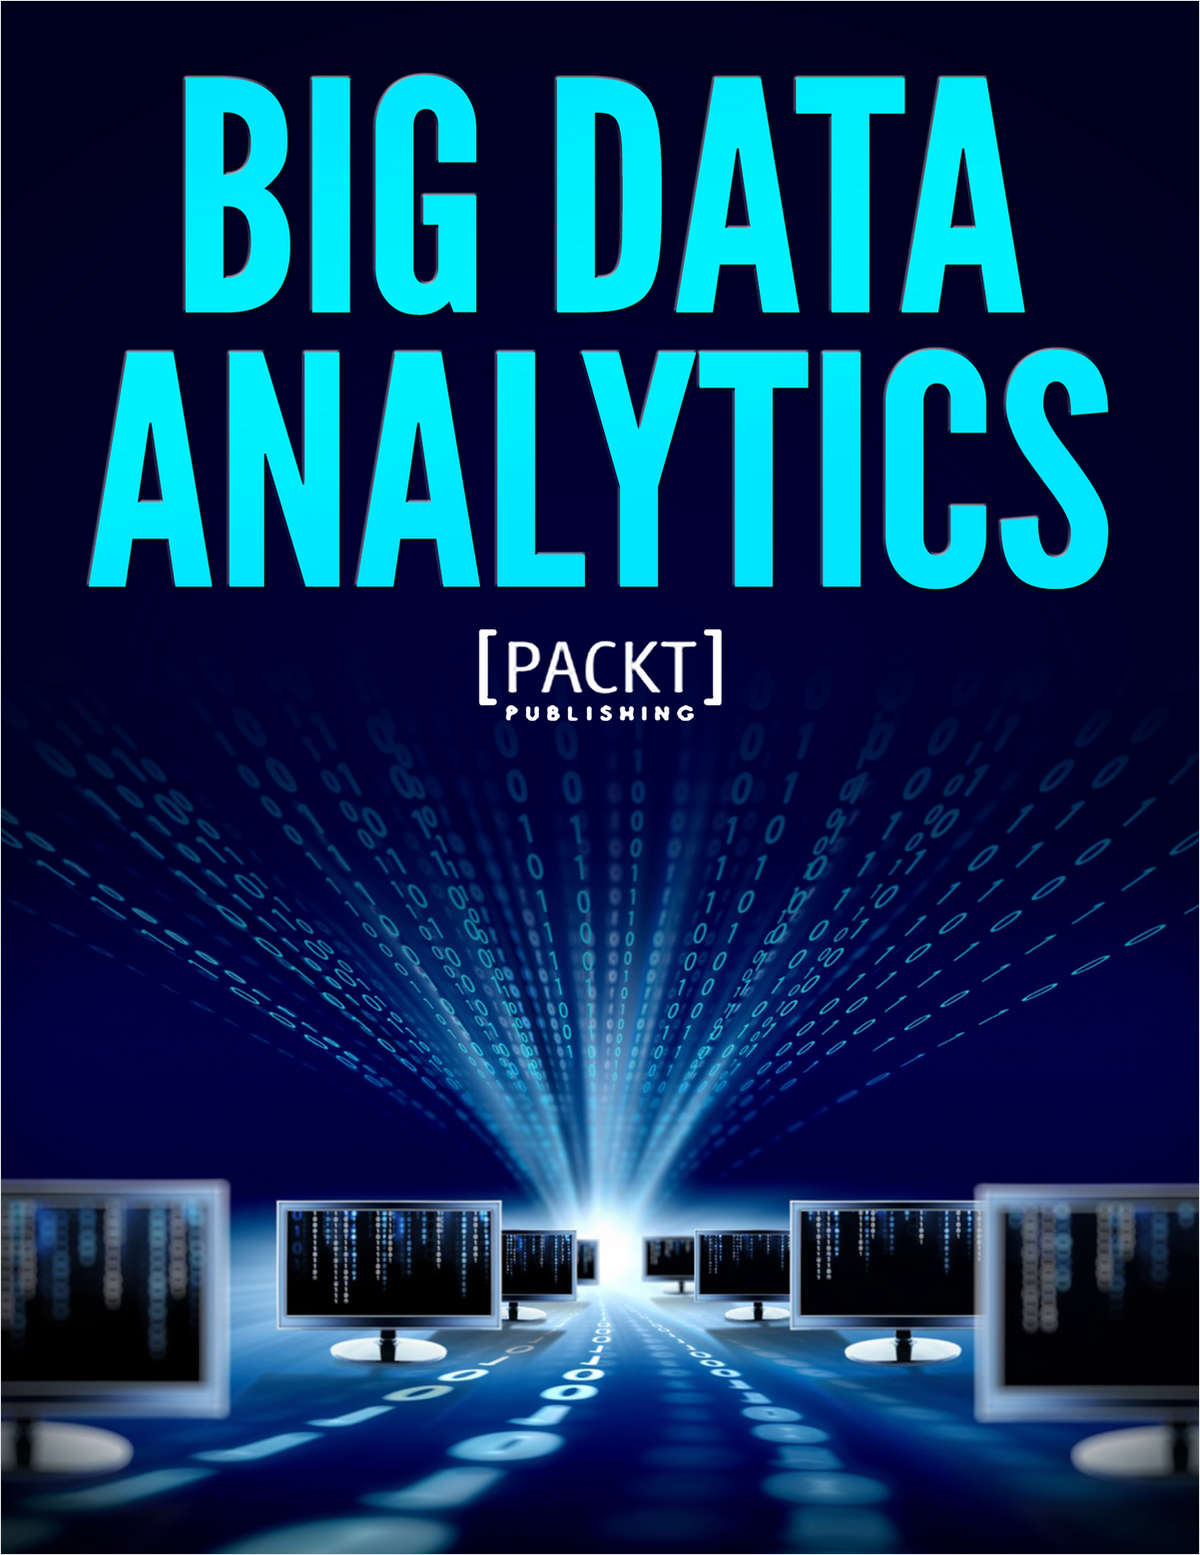 Big Data Analytics with Hank